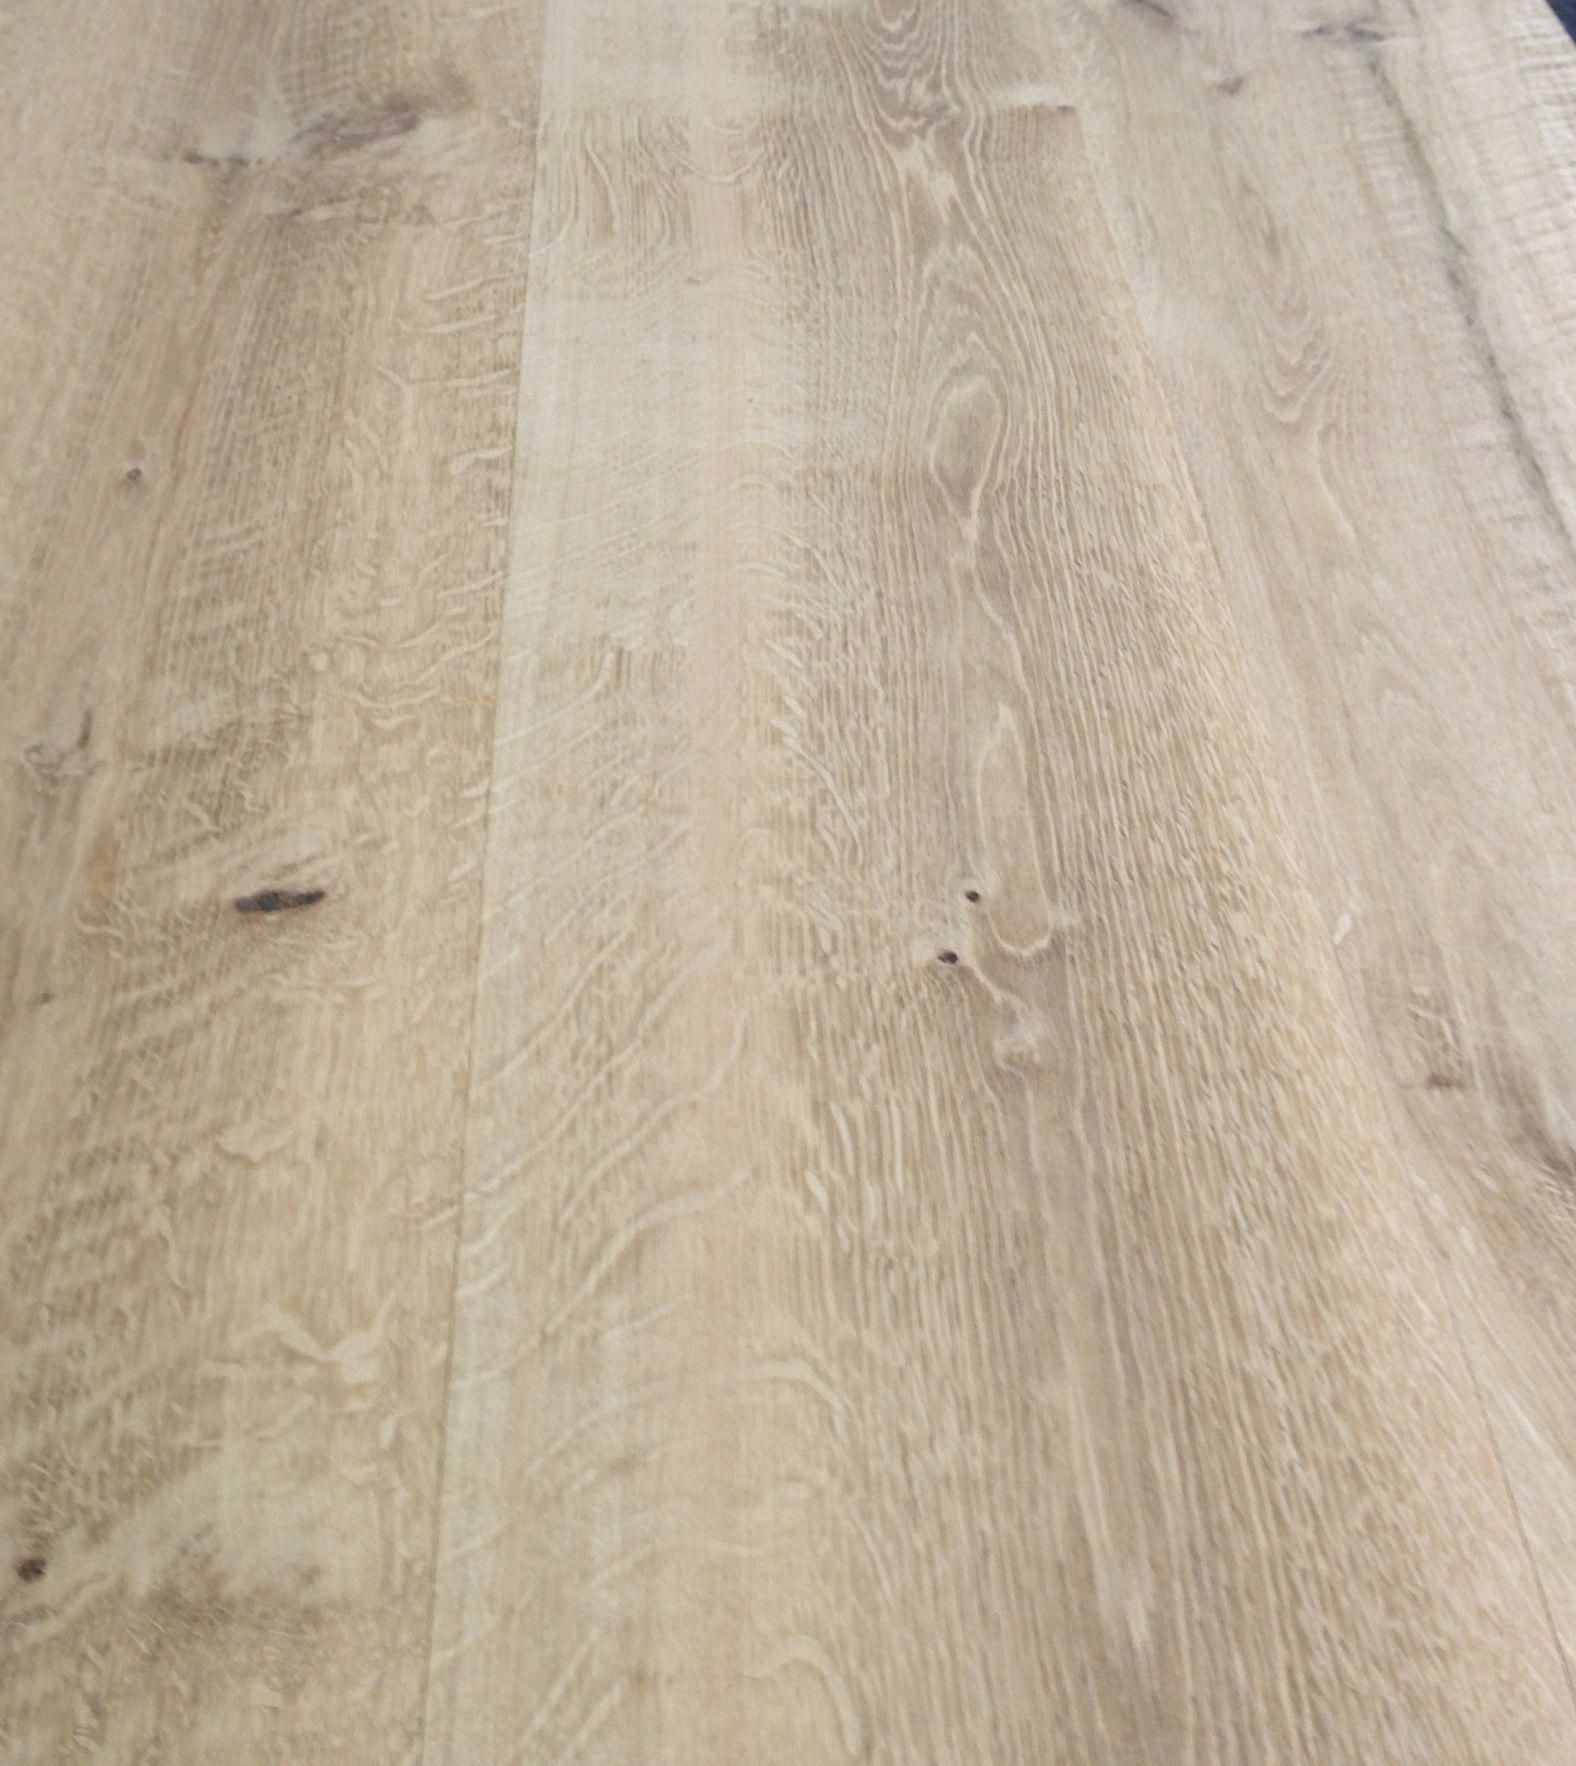 Rustic Hardwood Flooring Tips And Suggestion: Inspirational Tips That We Love! #wideplankoakfloor